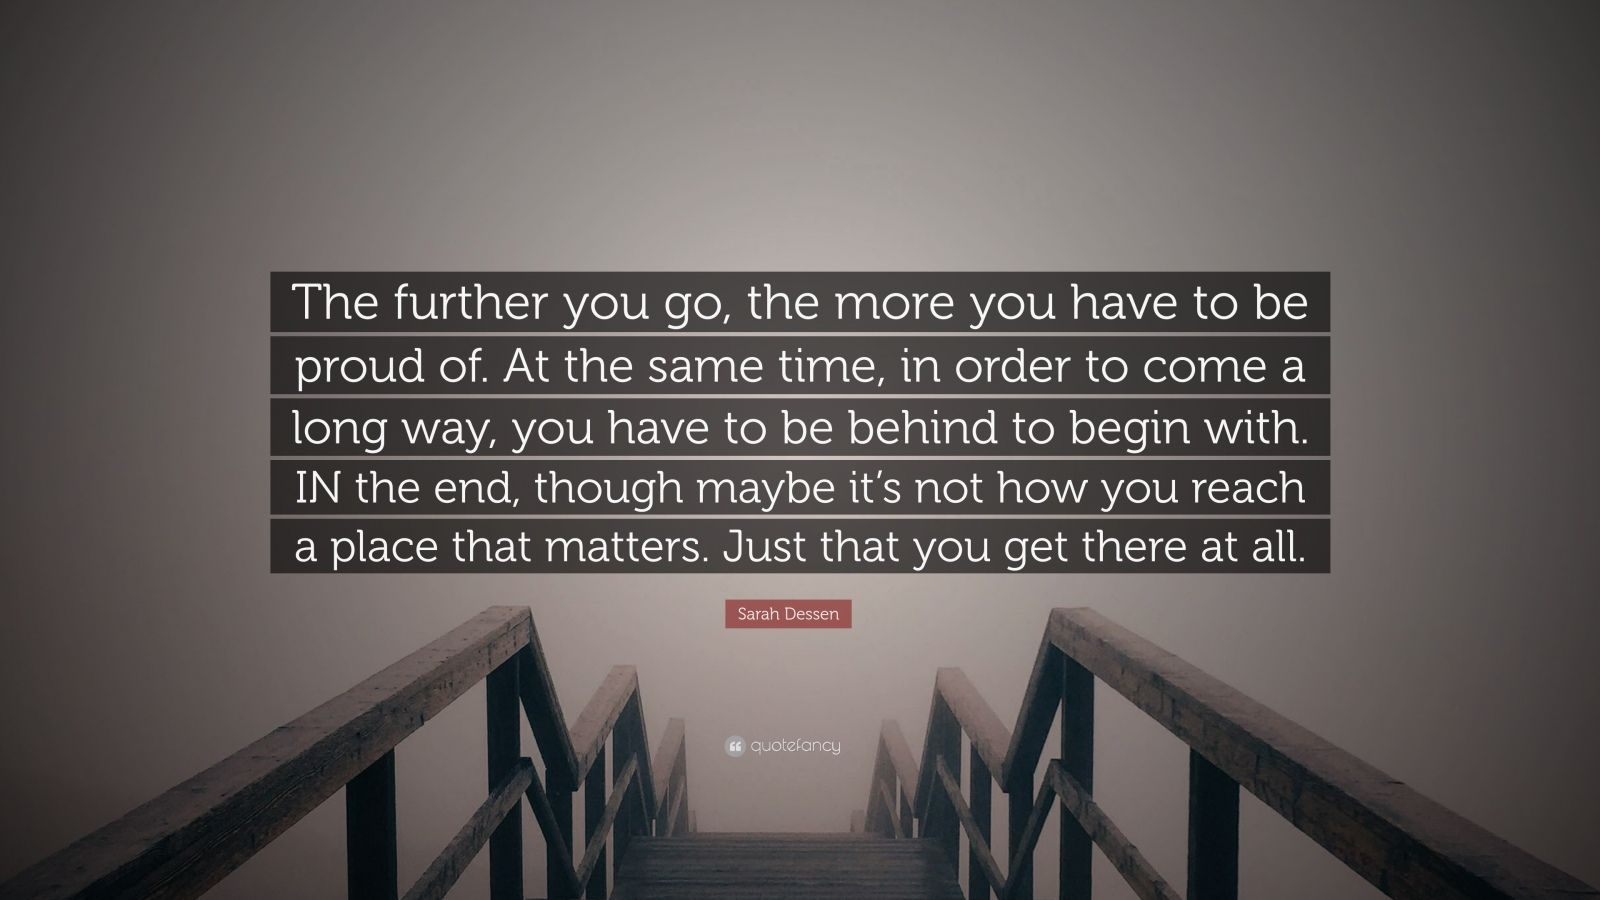 """Sarah Dessen Quote: """"The further you go, the more you have to be proud of. At the same time, in order to come a long way, you have to be behind to begin with. IN the end, though maybe it's not how you reach a place that matters. Just that you get there at all."""""""